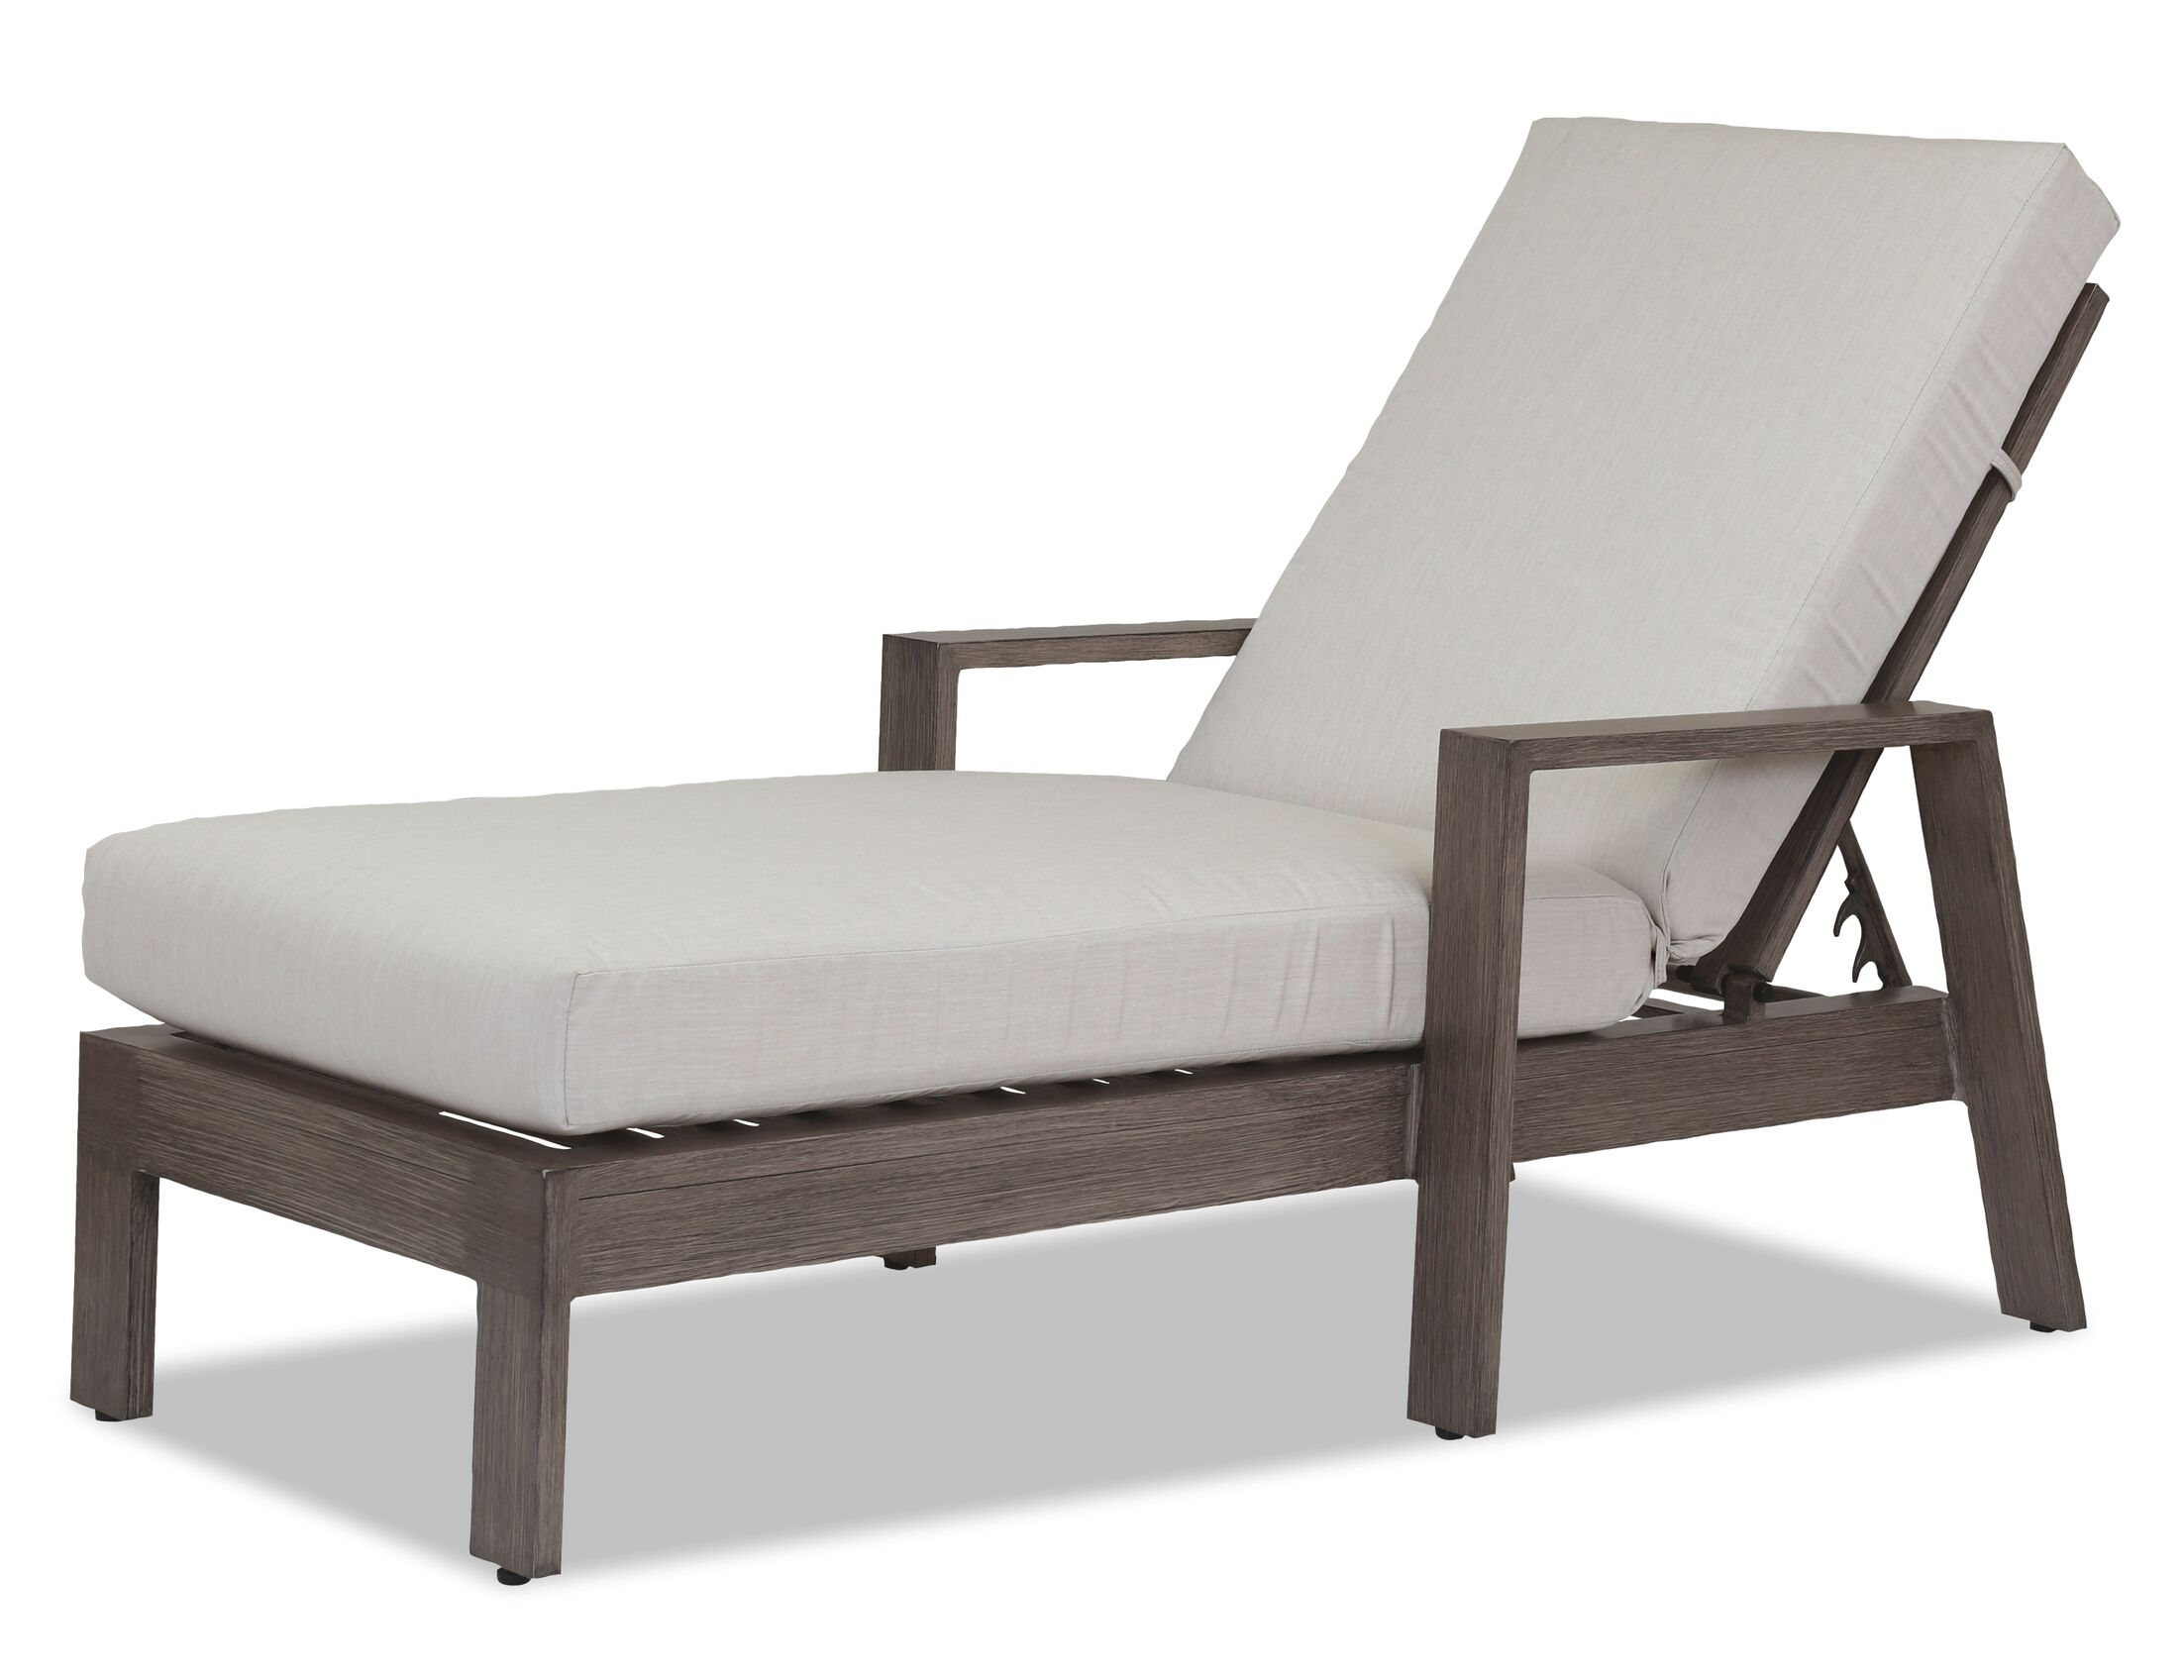 Laguna Double Chaise Lounge with Cushion